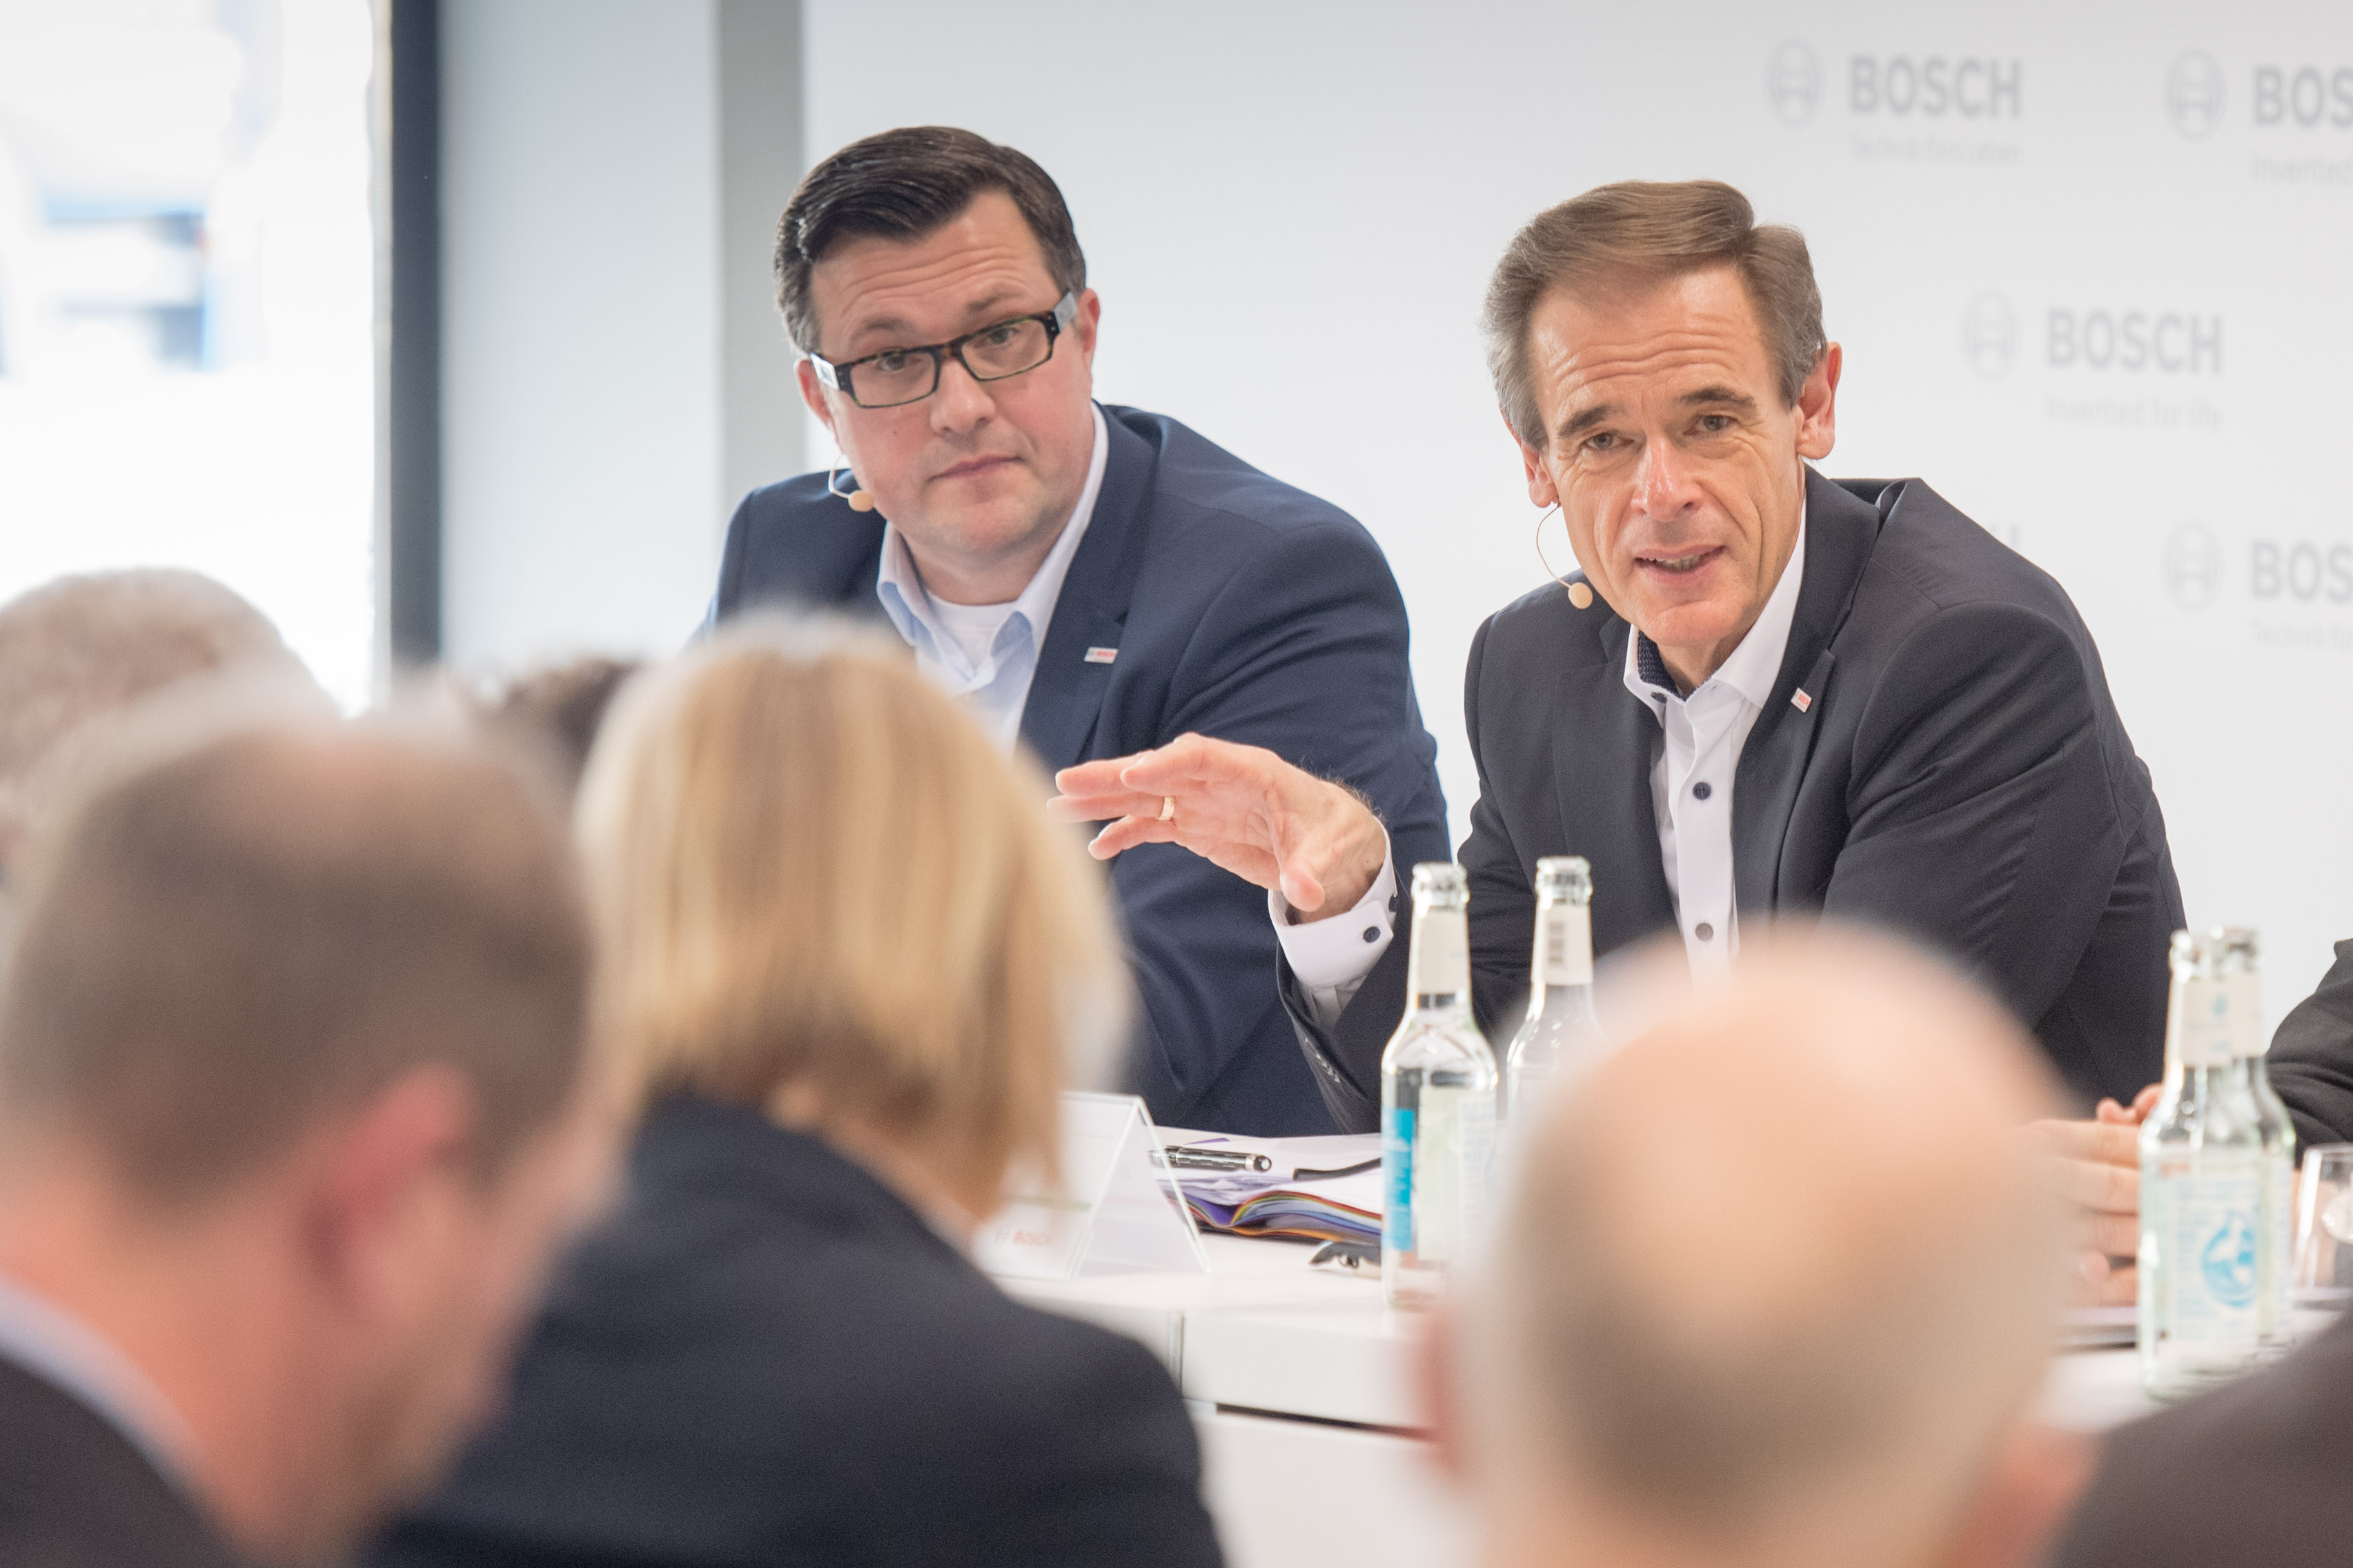 Press Conference at Bosch ConnectedWorld 2018